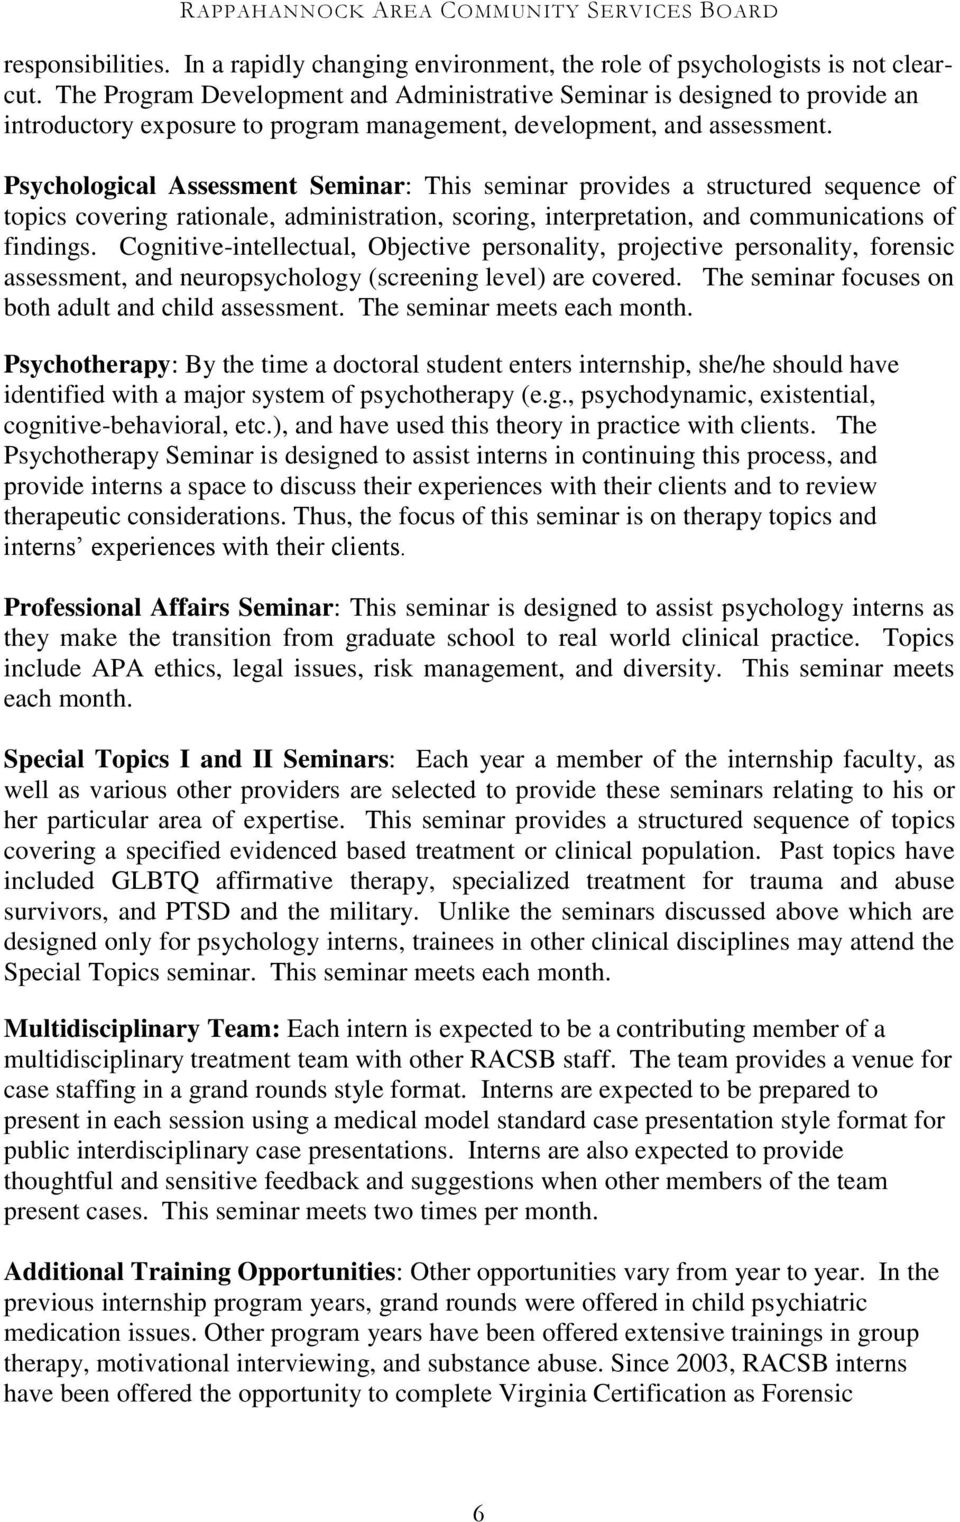 Psychological Assessment Seminar: This seminar provides a structured sequence of topics covering rationale, administration, scoring, interpretation, and communications of findings.